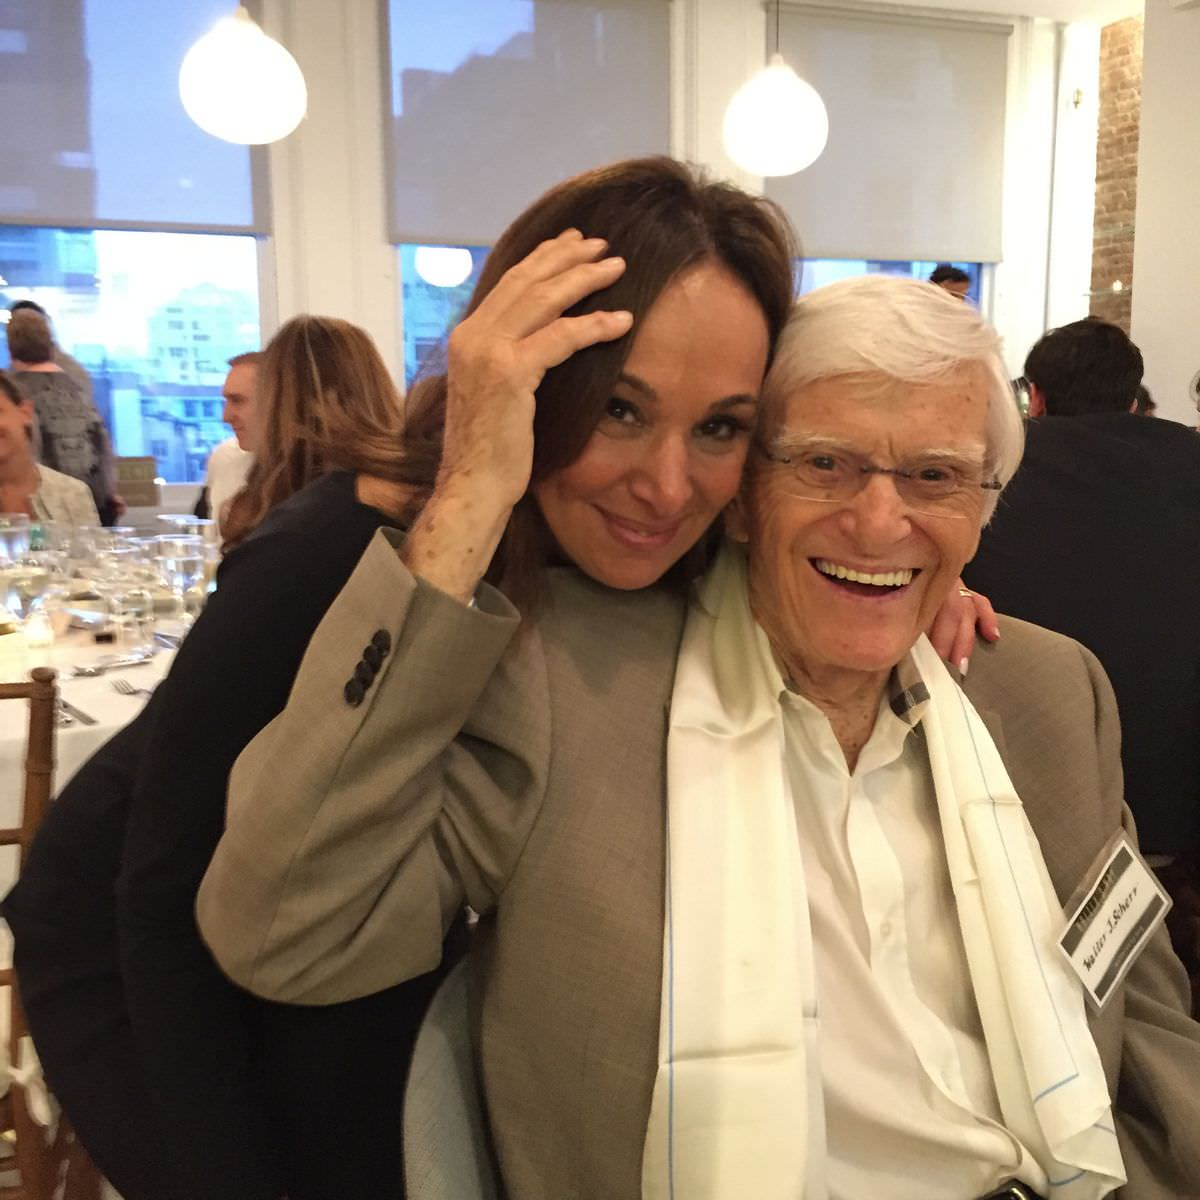 Walter with Rosanna Scotto